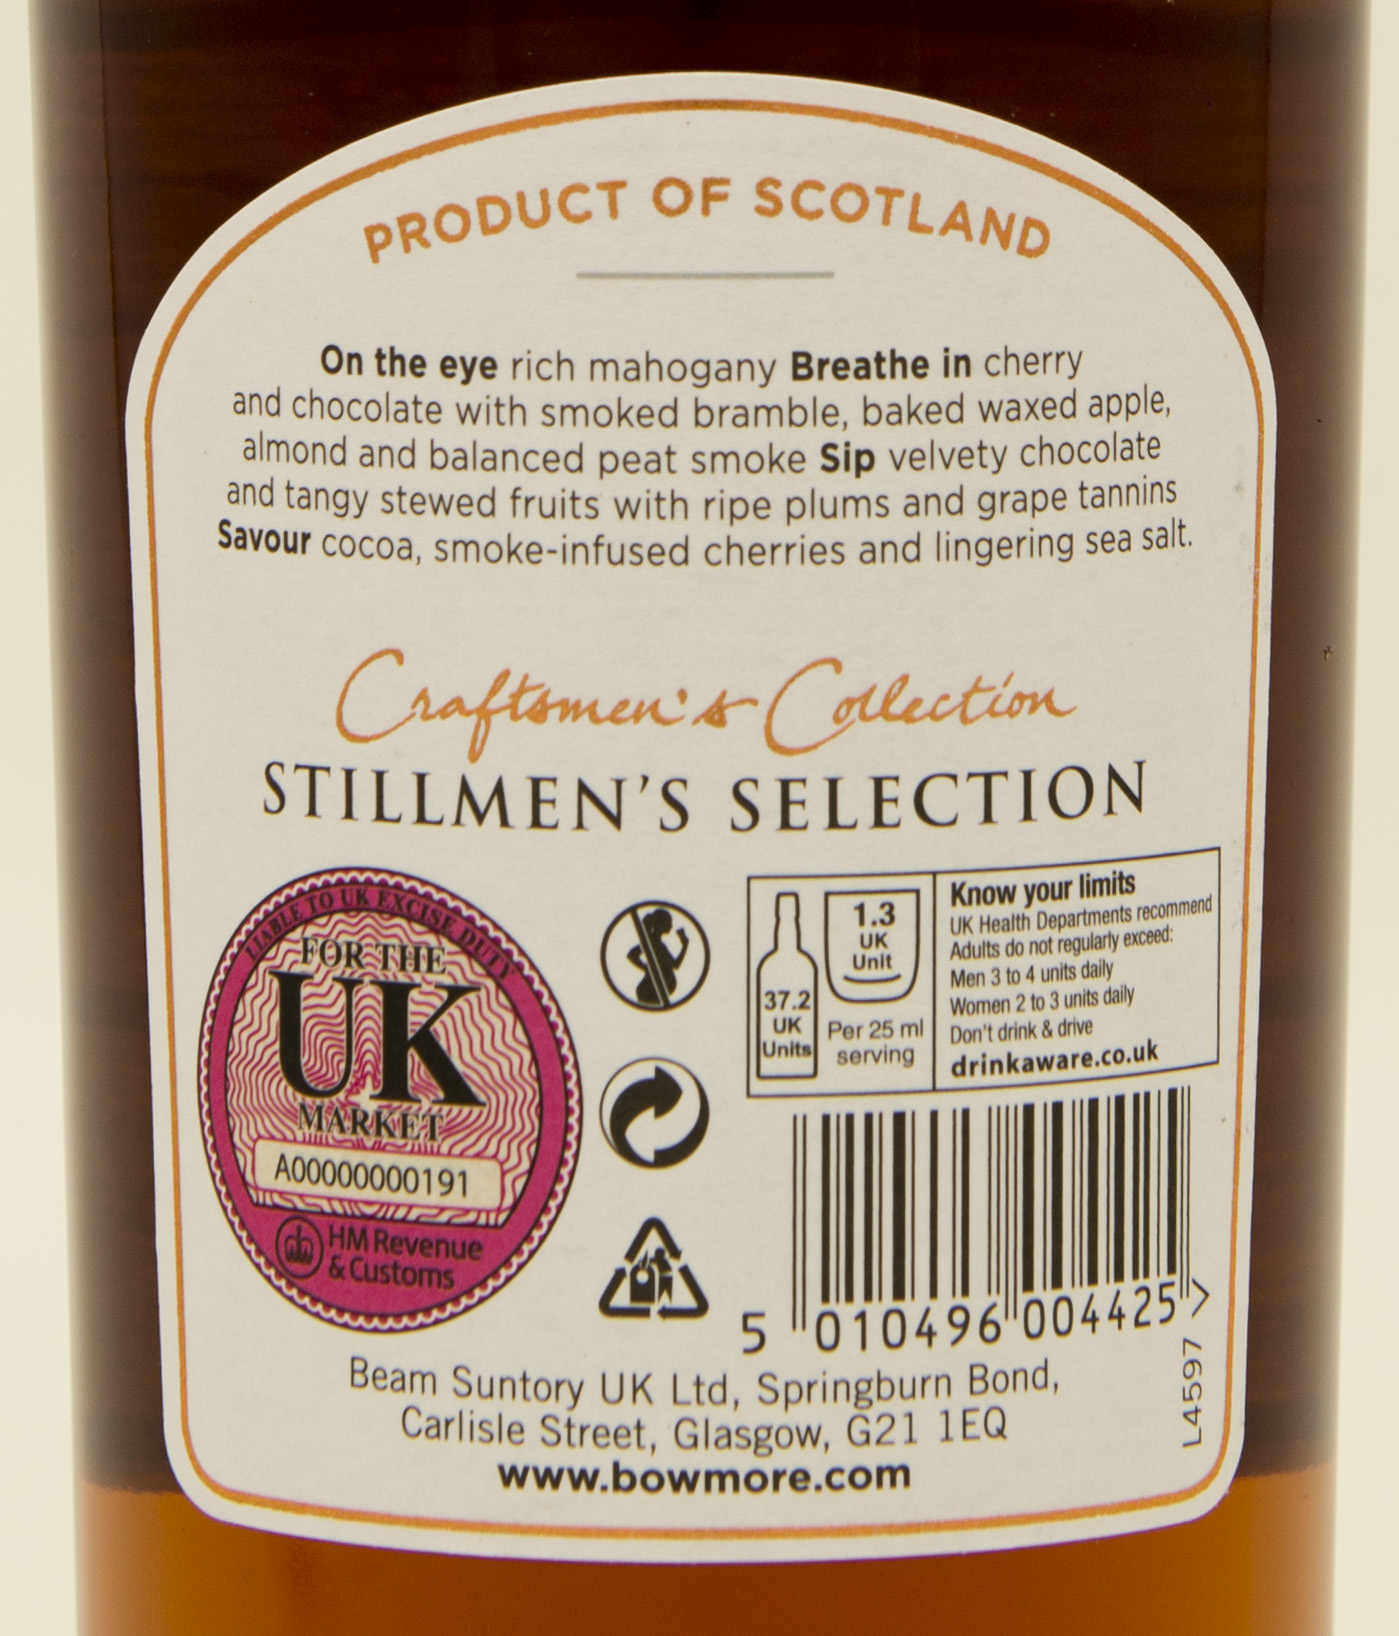 Billede: DSC_3224 - Bowmore Stillmen's Selection - back label.jpg